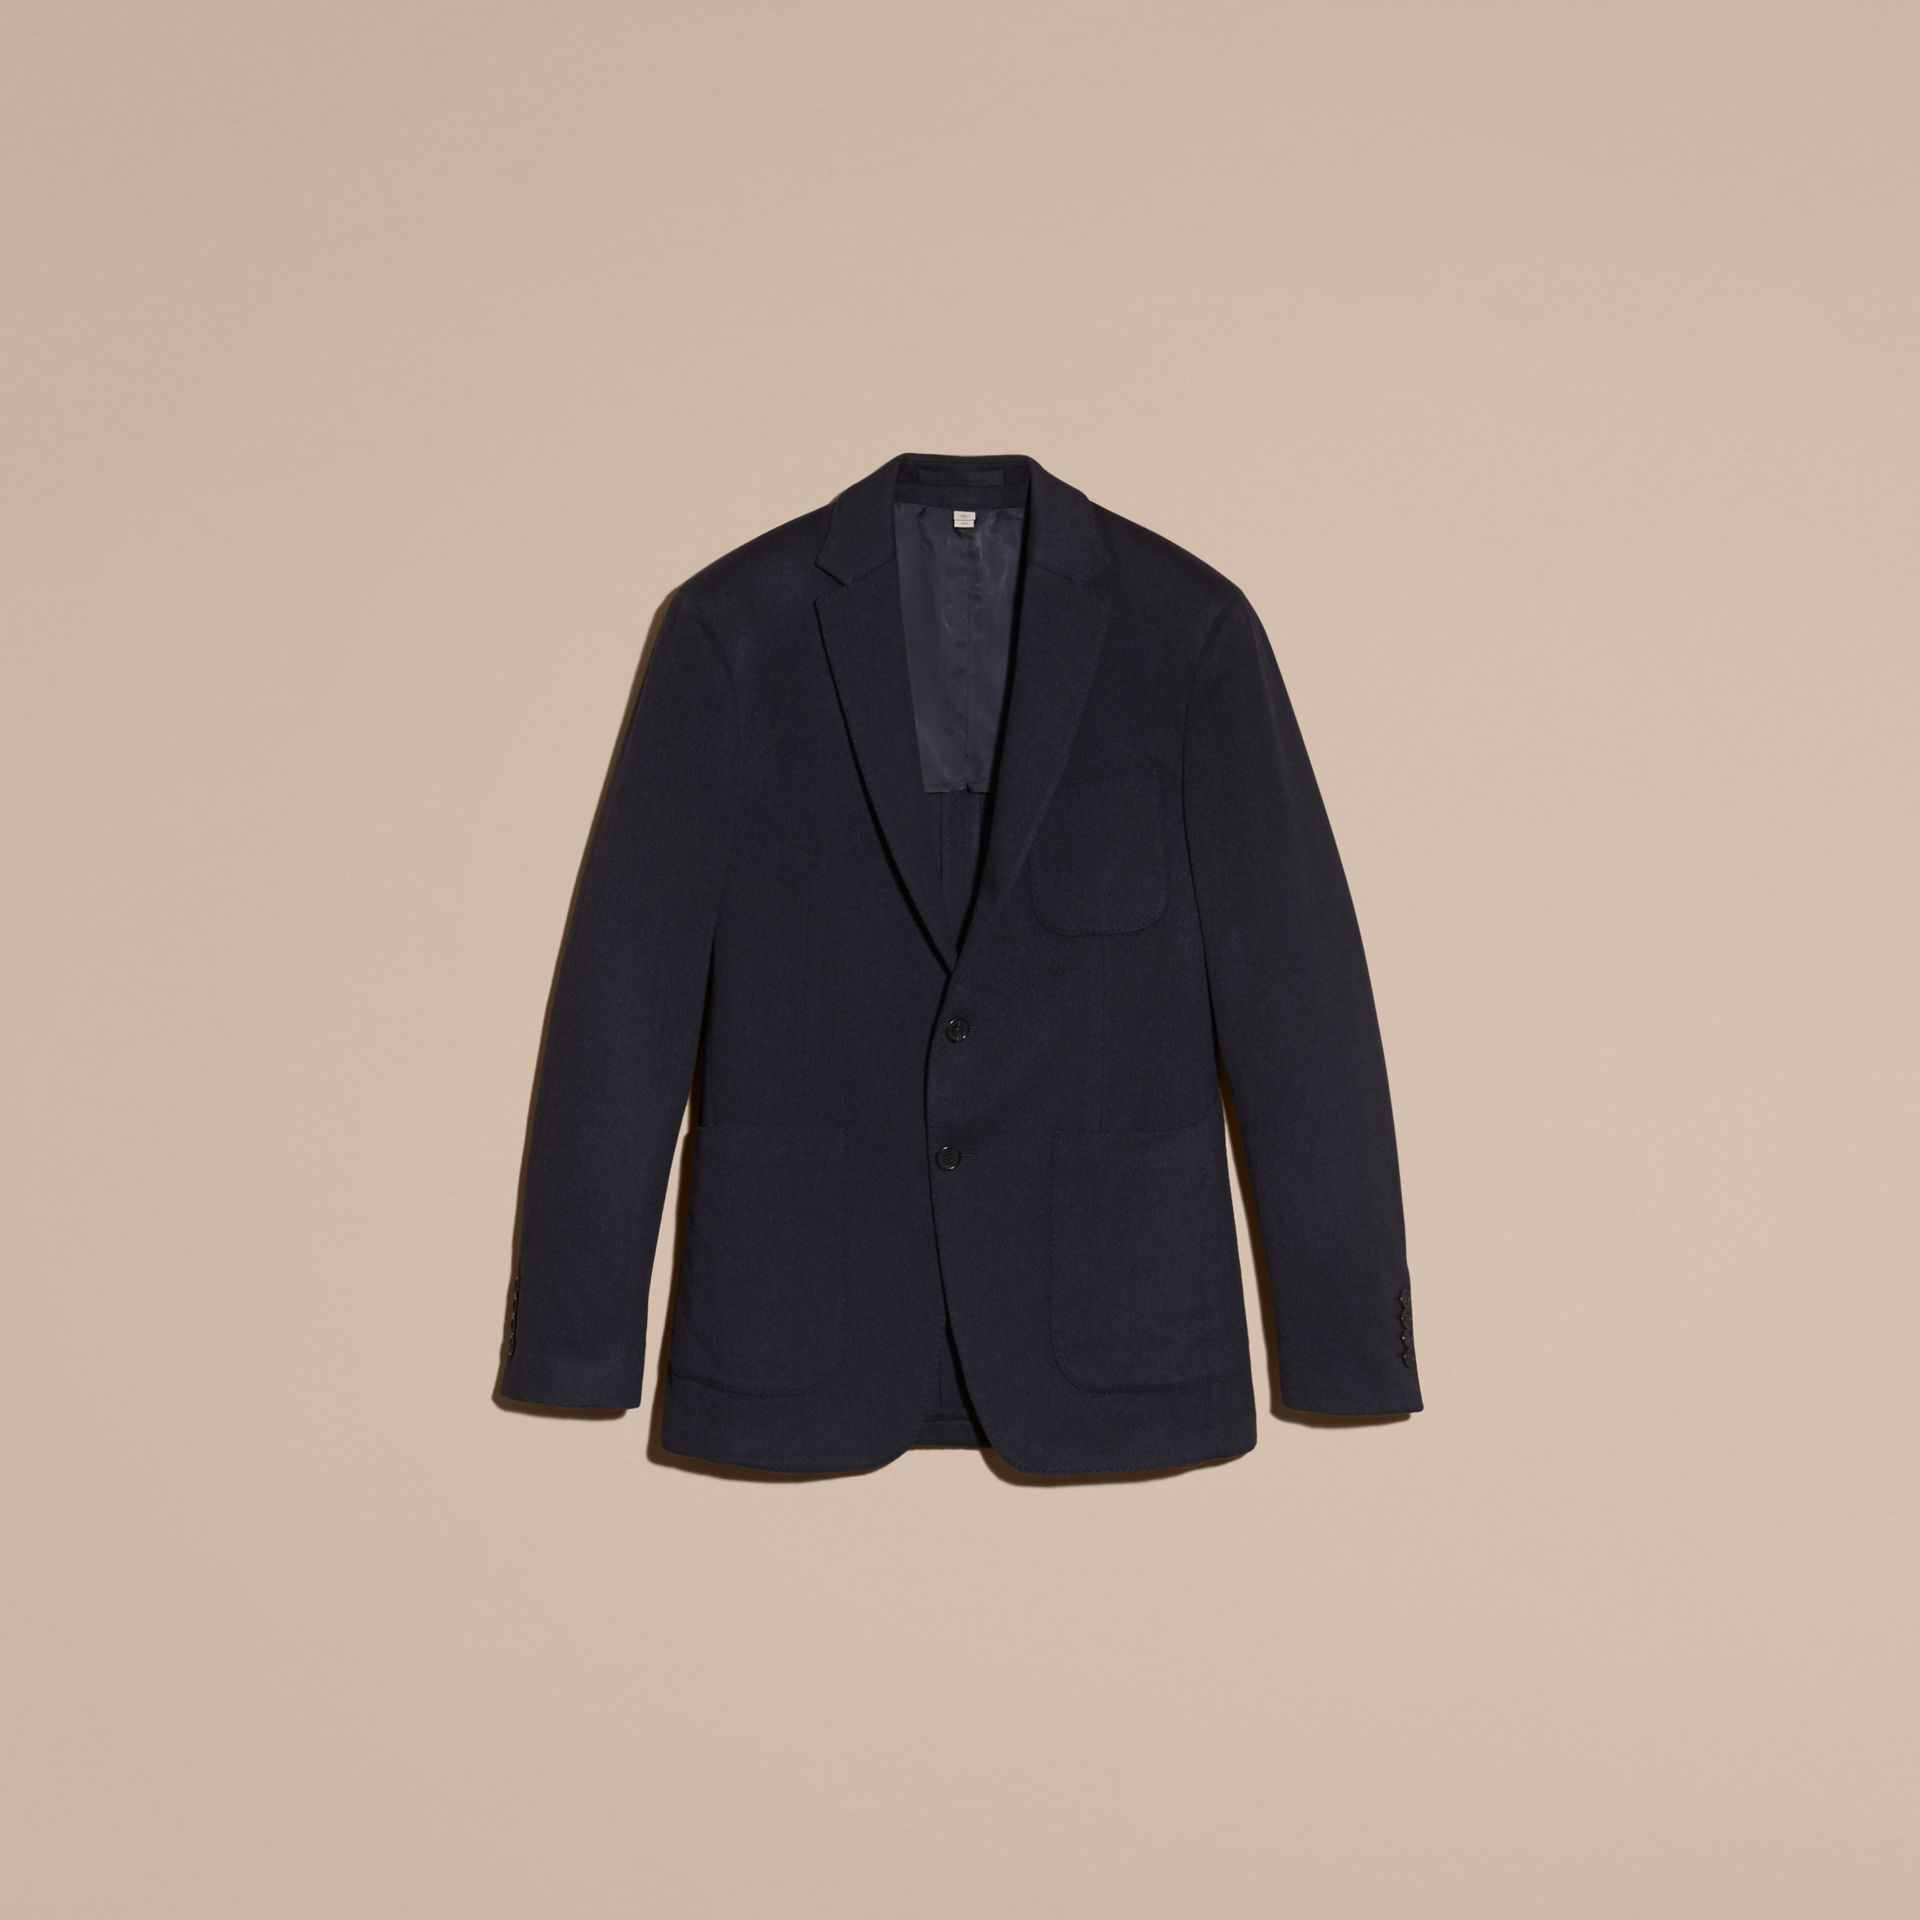 Navy melange Modern Fit Lightweight Cashmere Tailored Jacket Navy Melange - gallery image 4